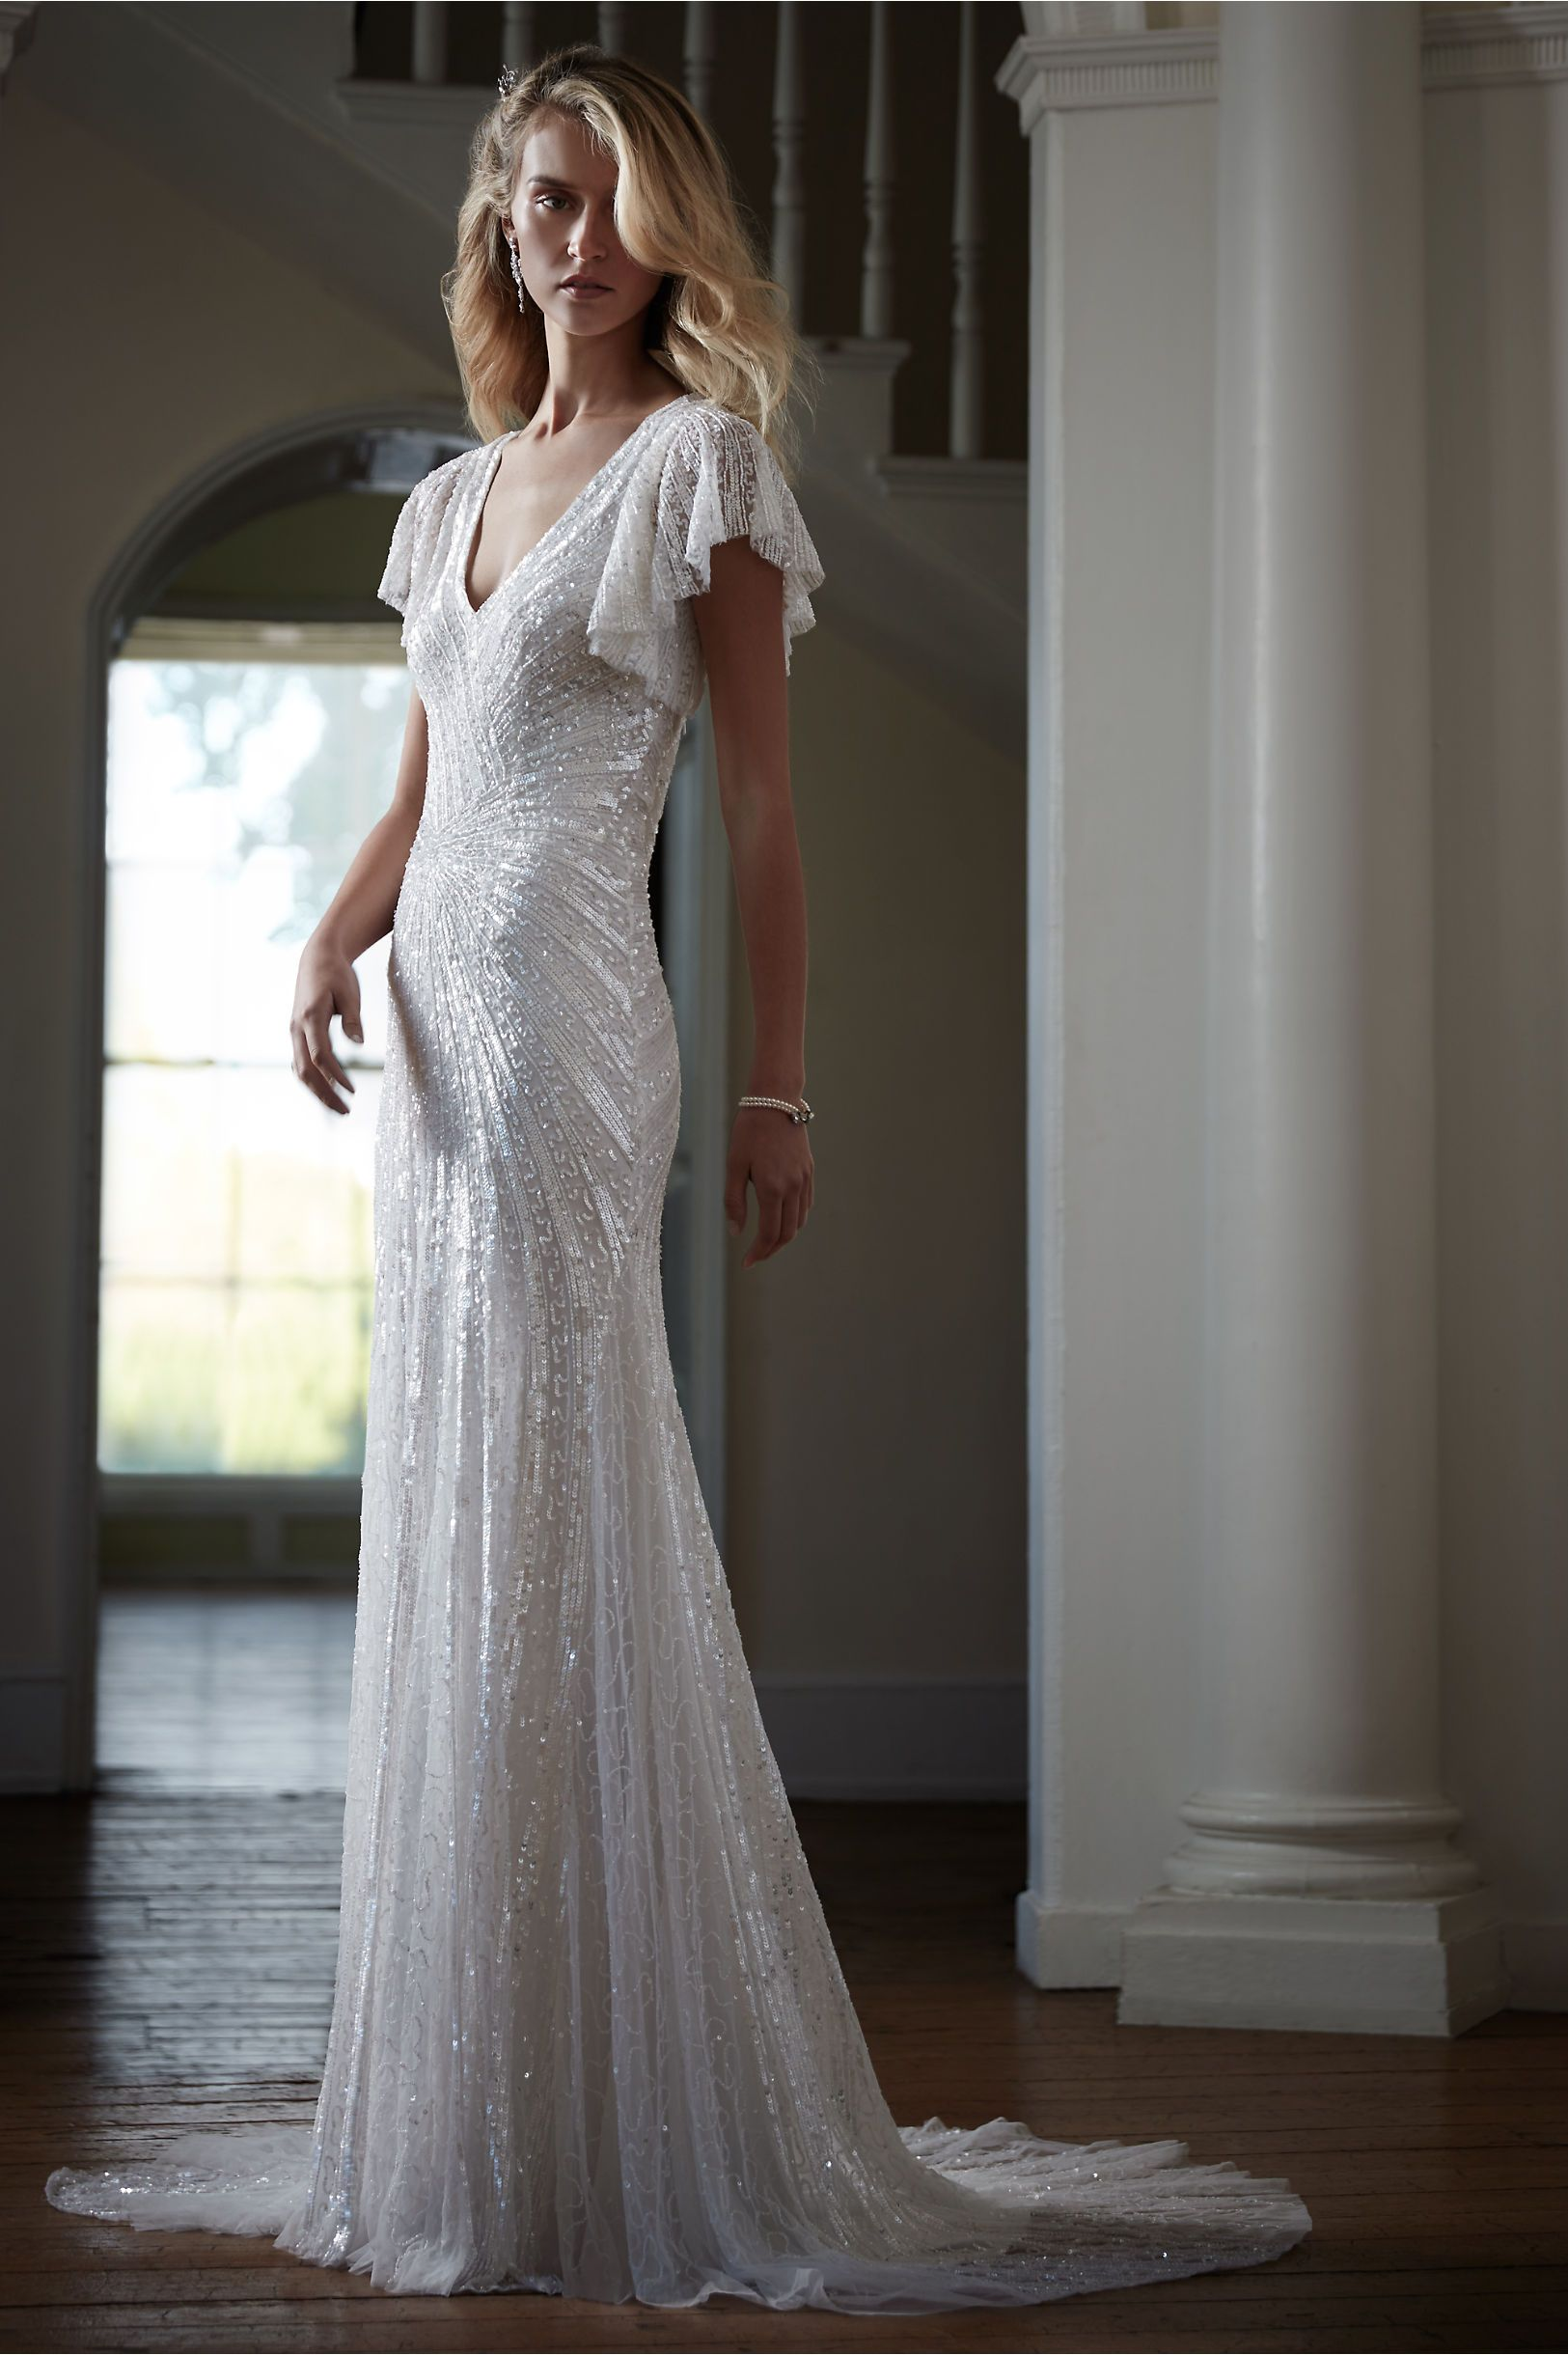 Inspired By Golden Age Glamour This Silver Beaded Wedding Dress Looks Effortlessly Elegant Against Any Backdrop Cibella Gown From Bhldn